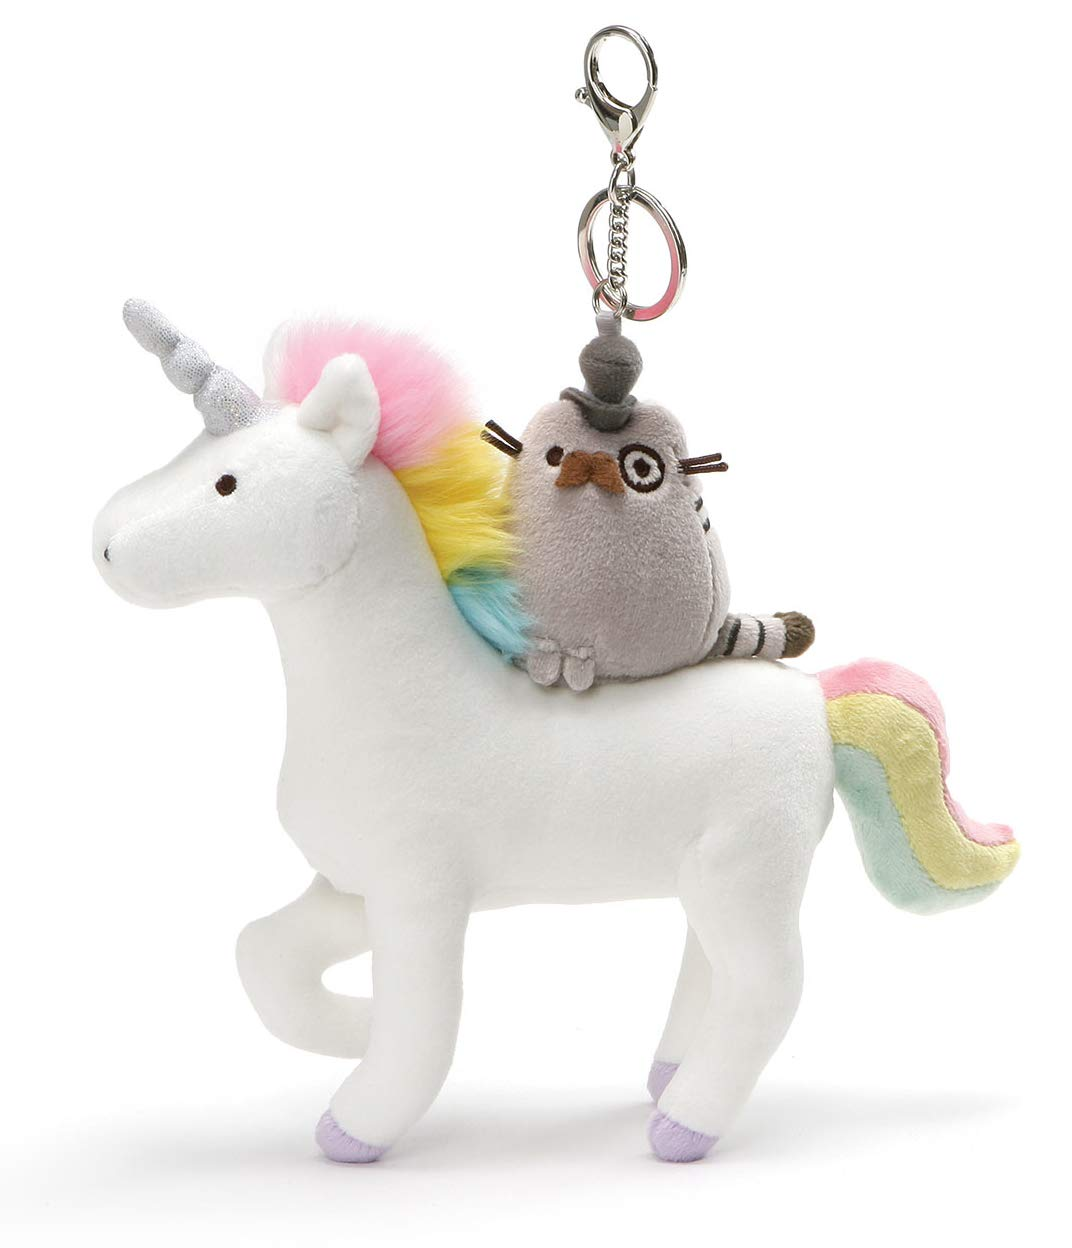 GUND Pusheen Fancy and Unicorn Magical Kitties Plush Deluxe Keychain Clip, Multicolor, 8.5